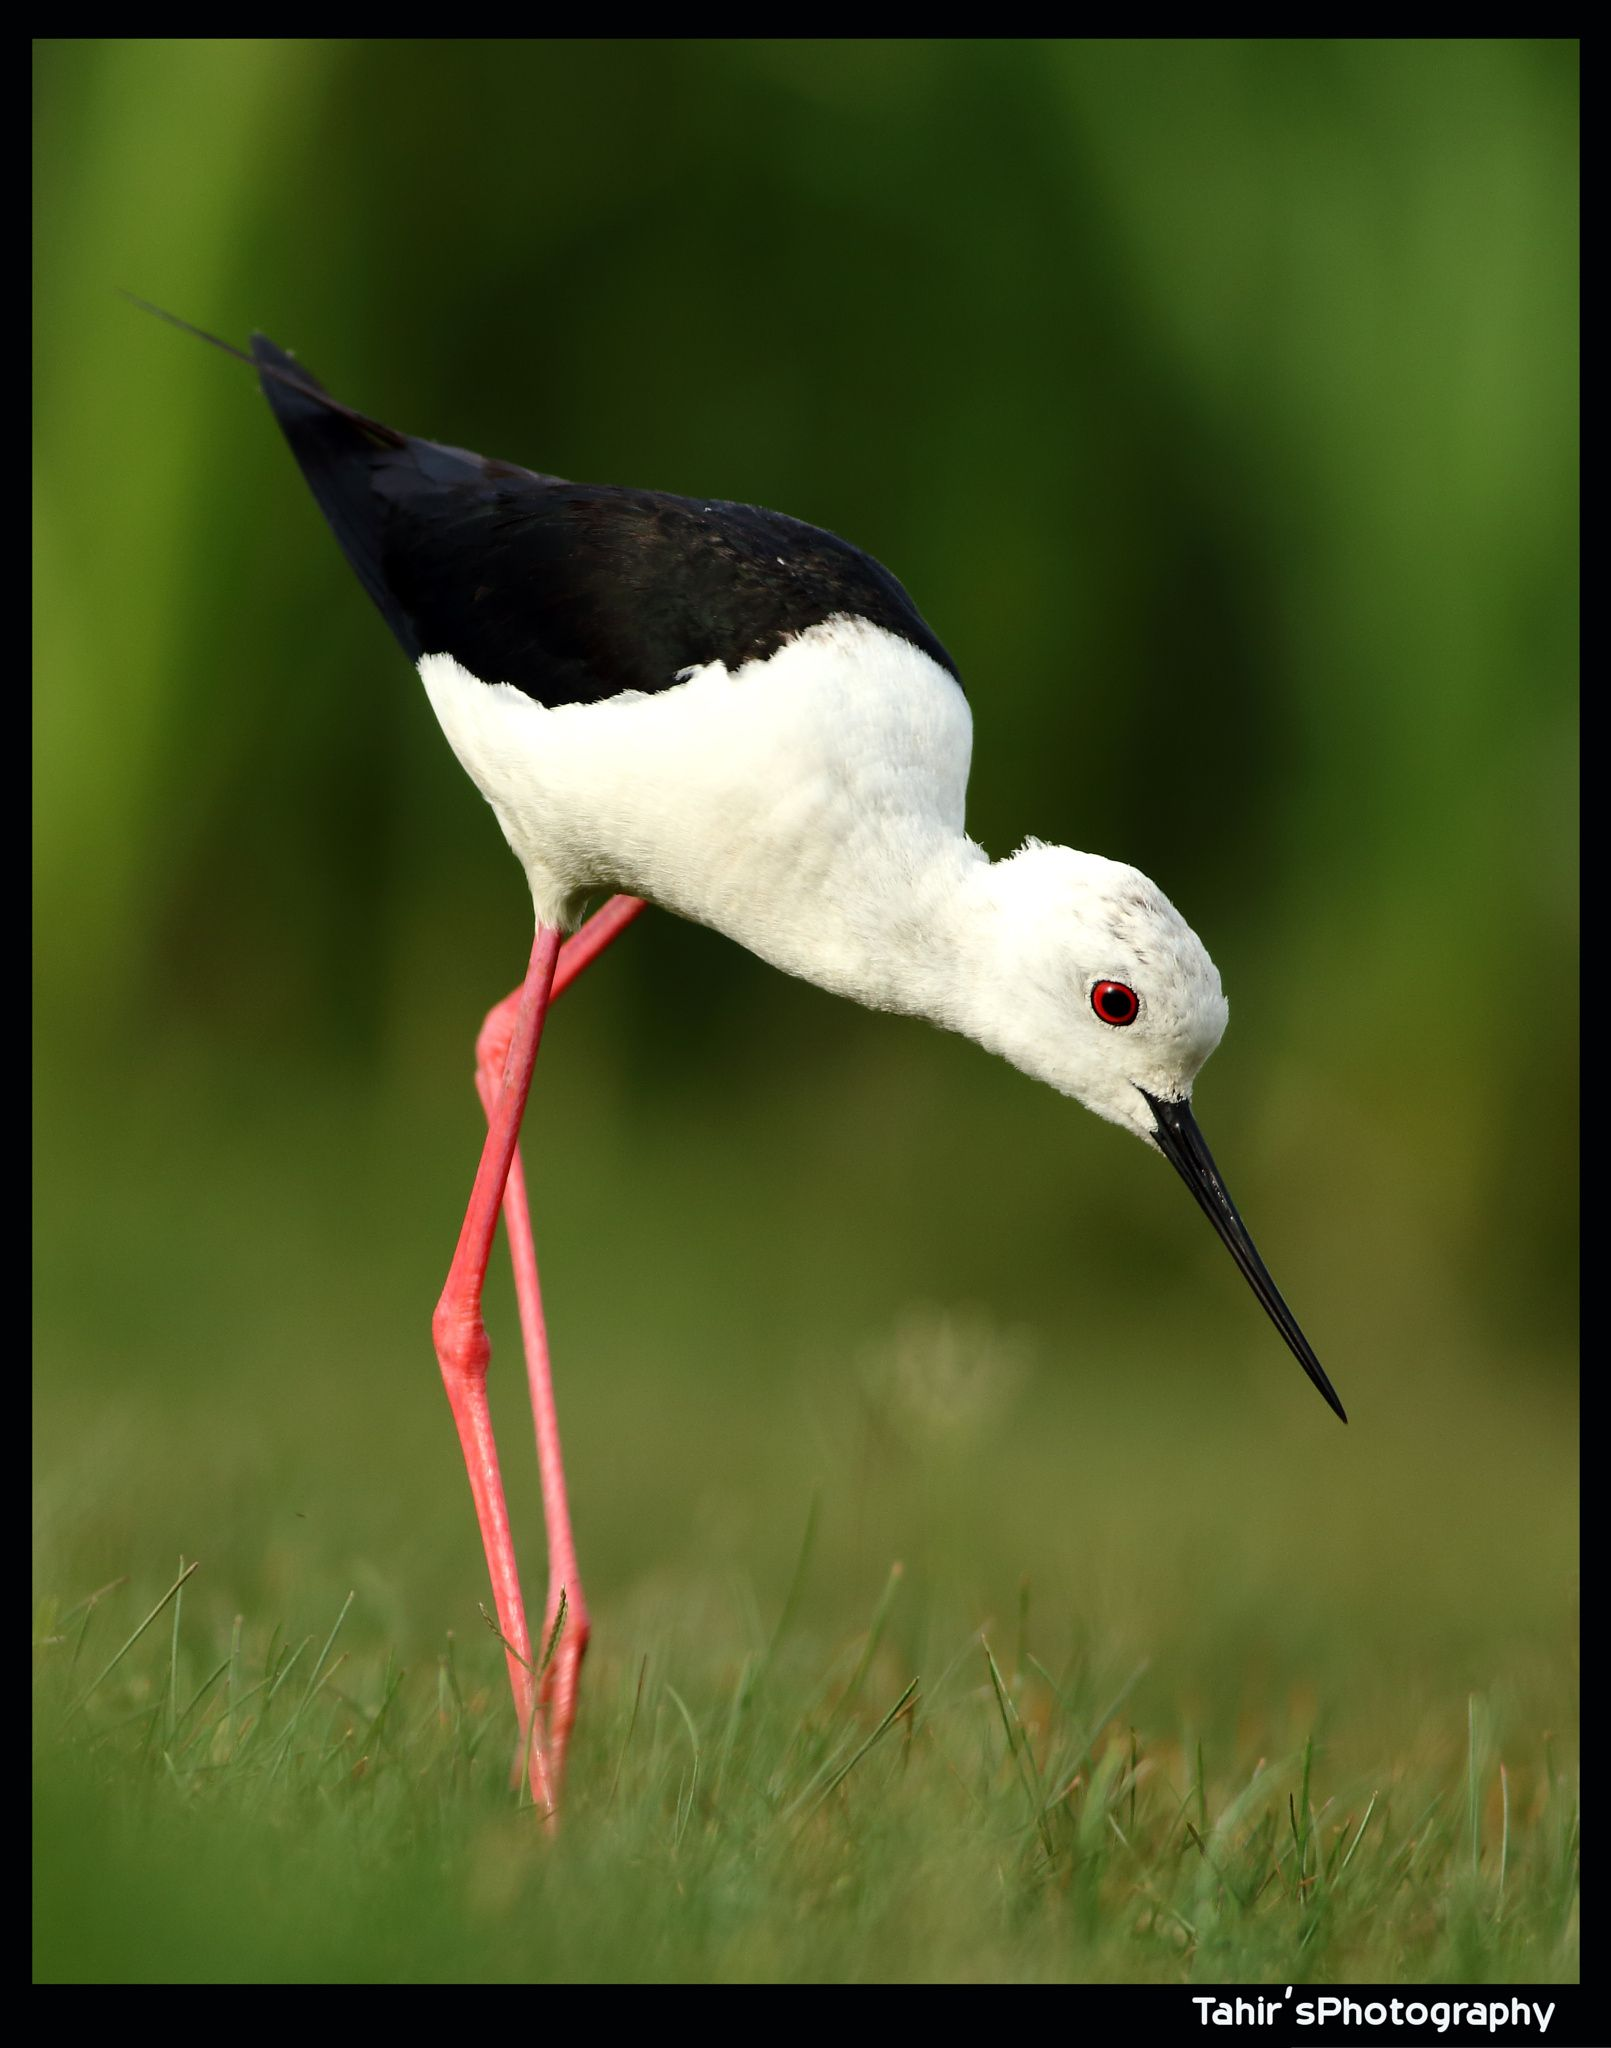 Stilt by Nature images on 500px